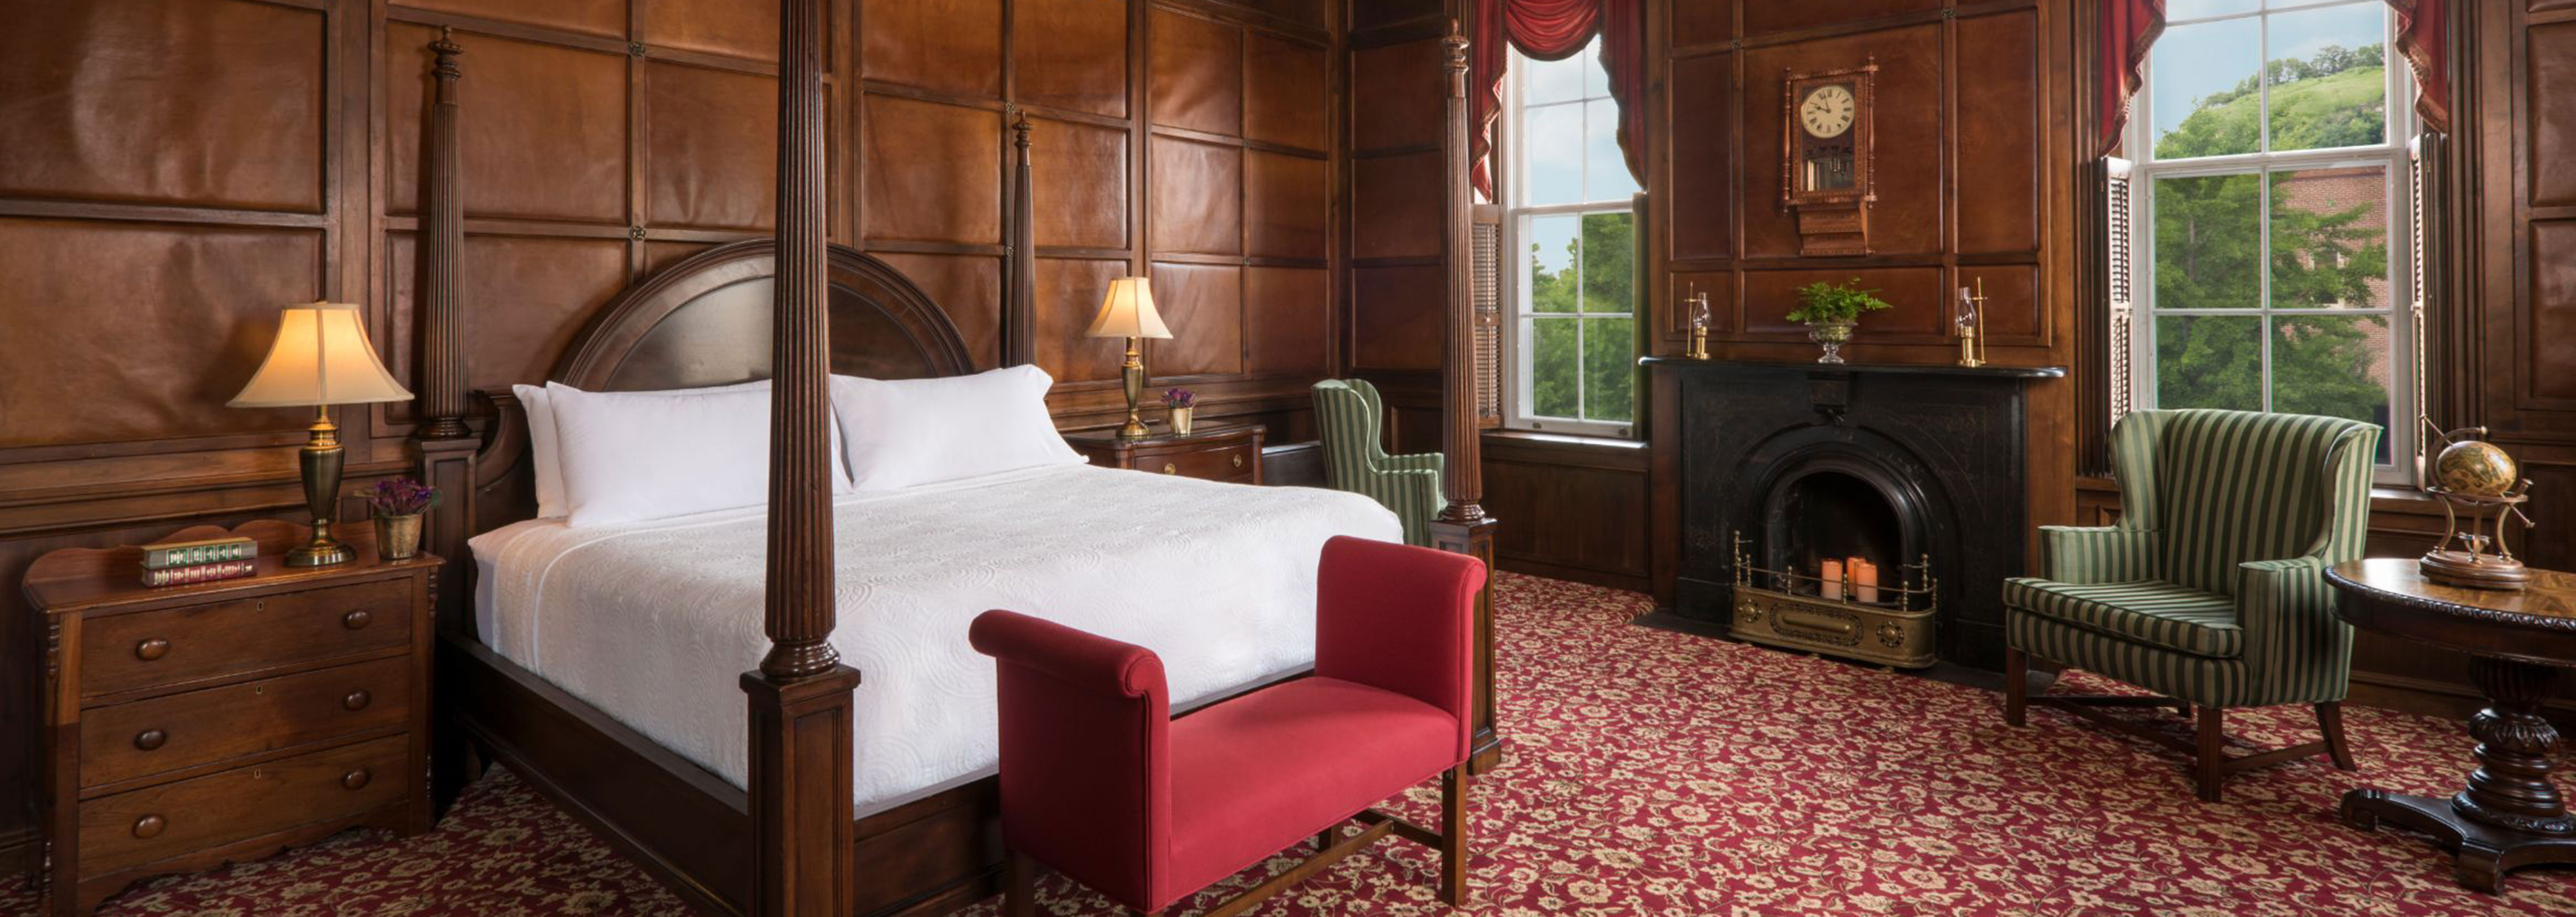 Image of Guestroom Interior St. James Hotel, 1875, Member of Historic Hotels of America, in Red Wing, Minnesota, Accommodations